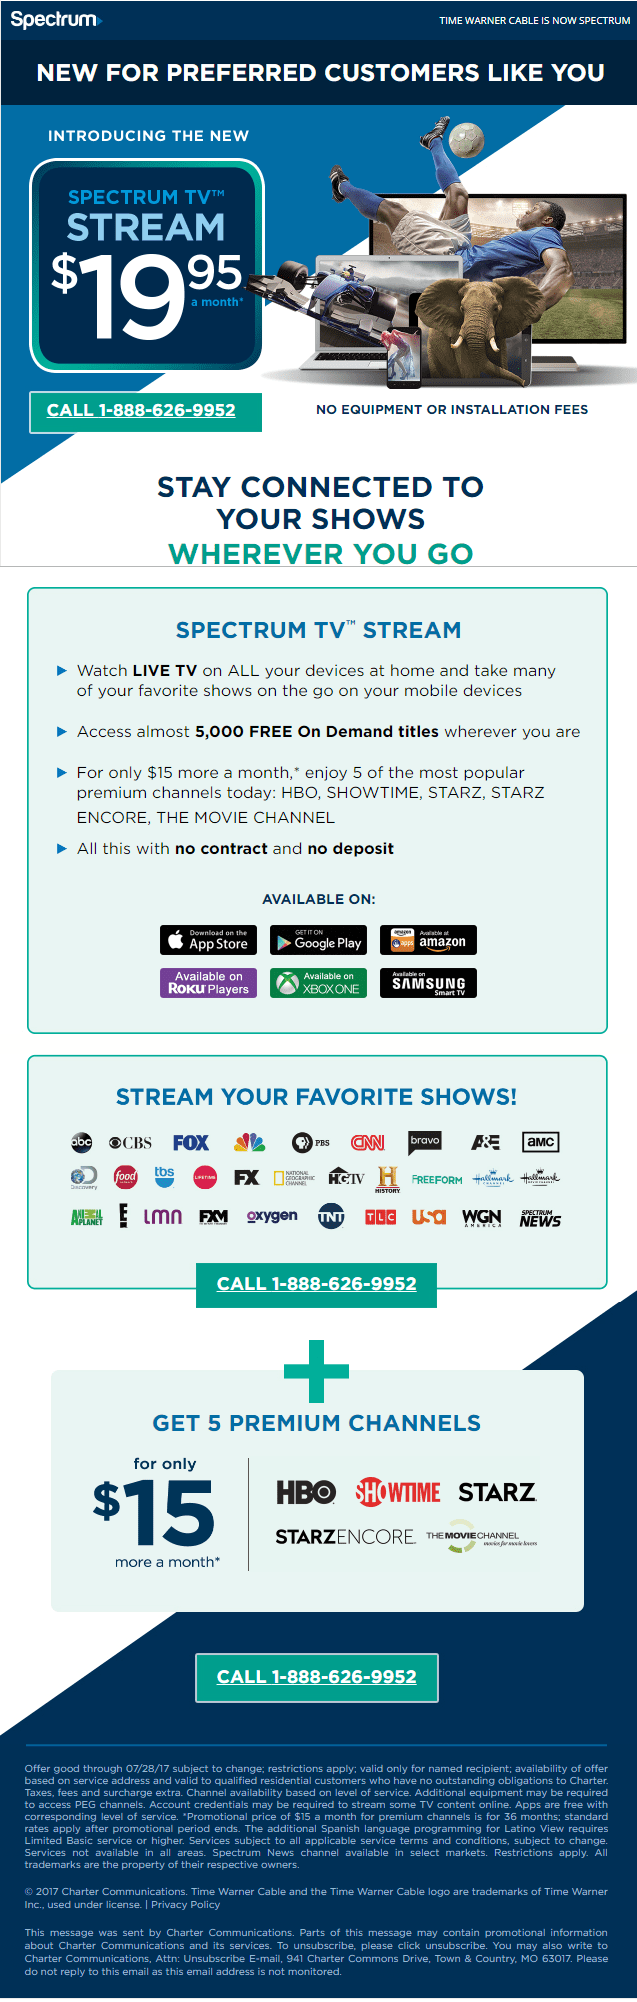 Charter Cable Packages >> Charter Spectrum Introduces $19.95 Sports-free Online Cable TV Alternative